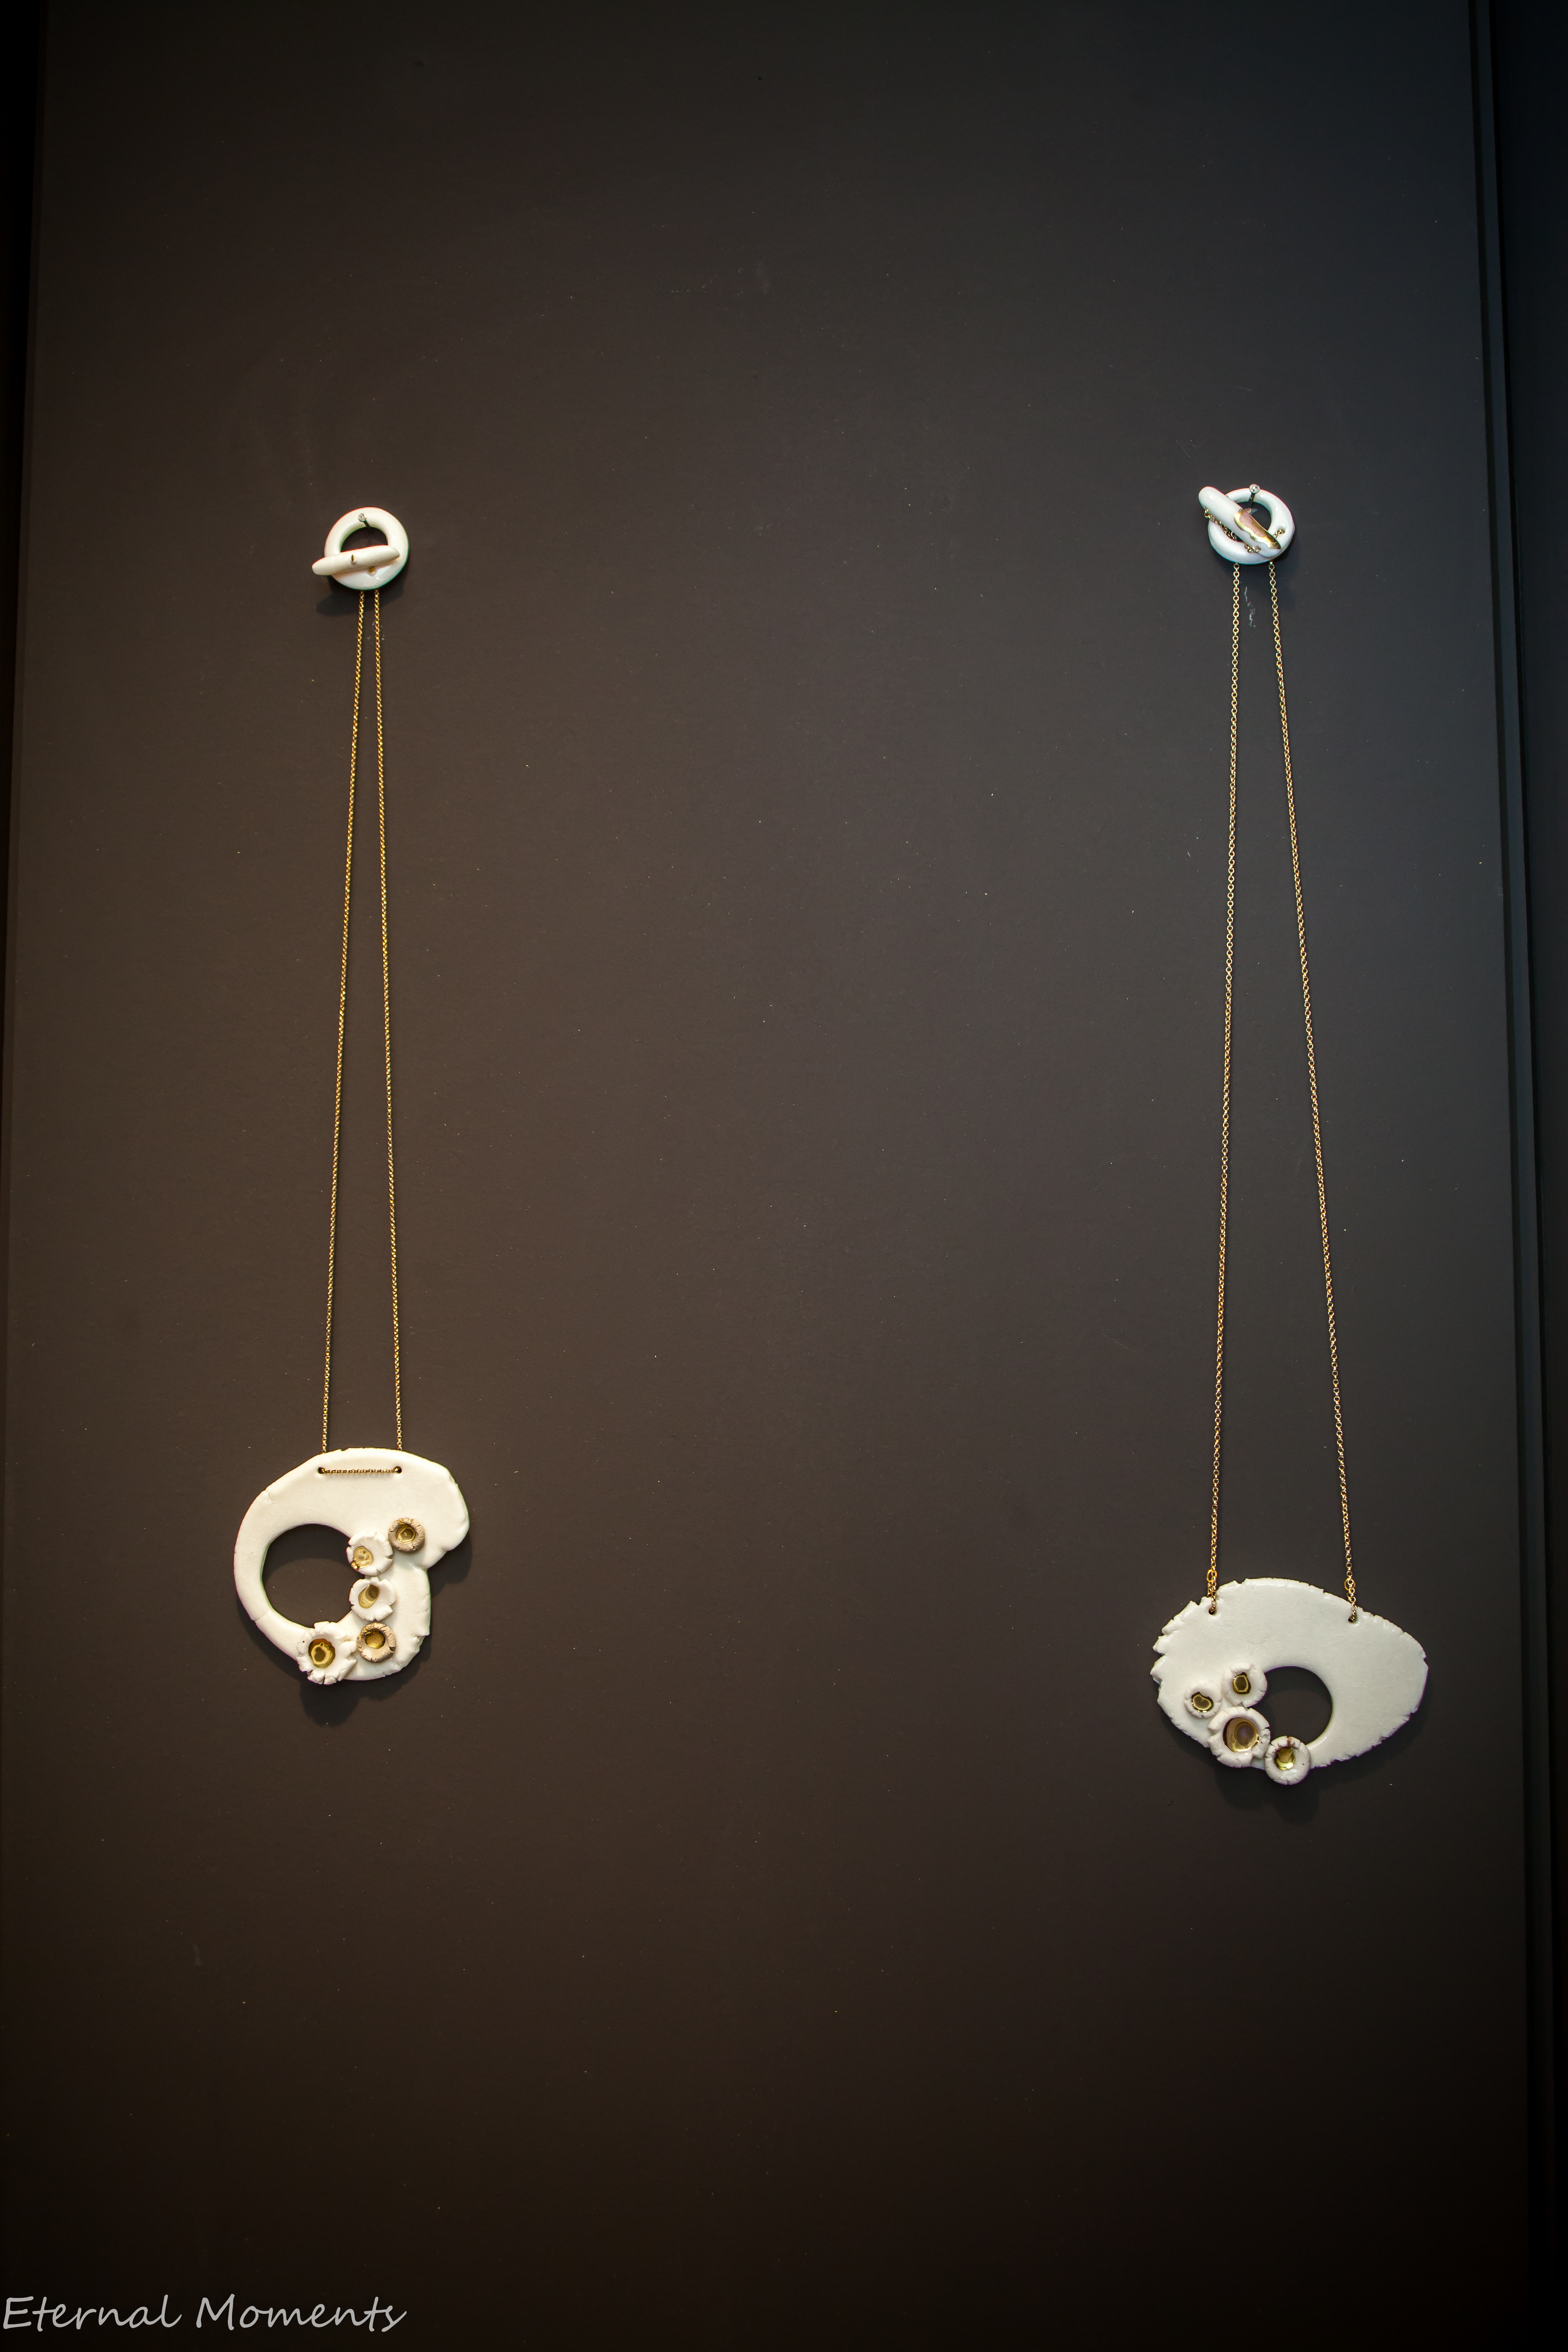 Midas touch necklaces